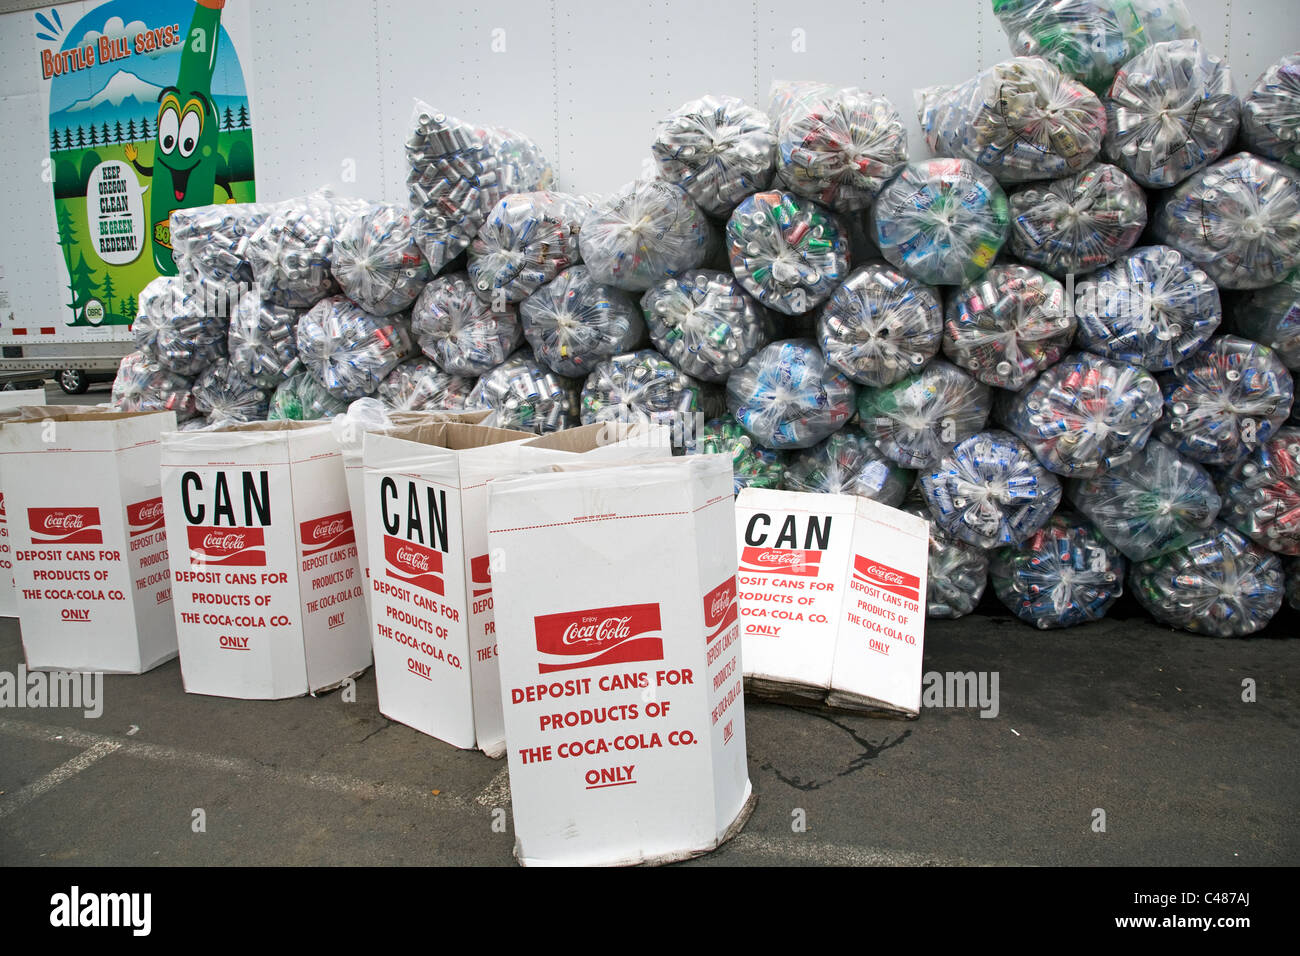 Aluminium cans from the Coca Cola Corporation being collected for charity in Bend, Oregon. - Stock Image